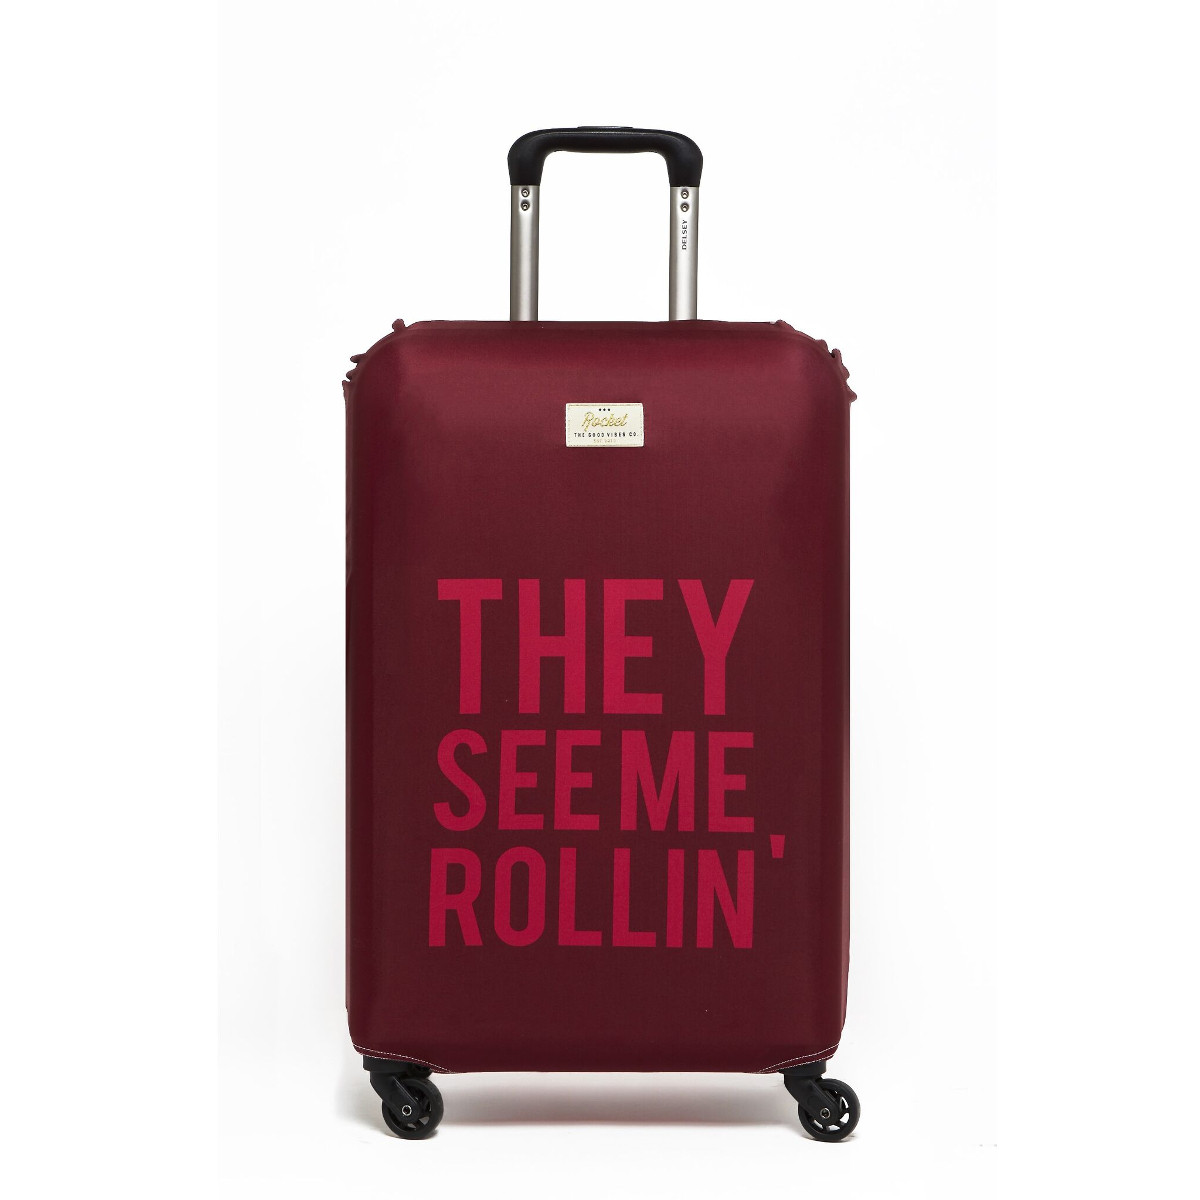 Luggage Cover They see me rollin